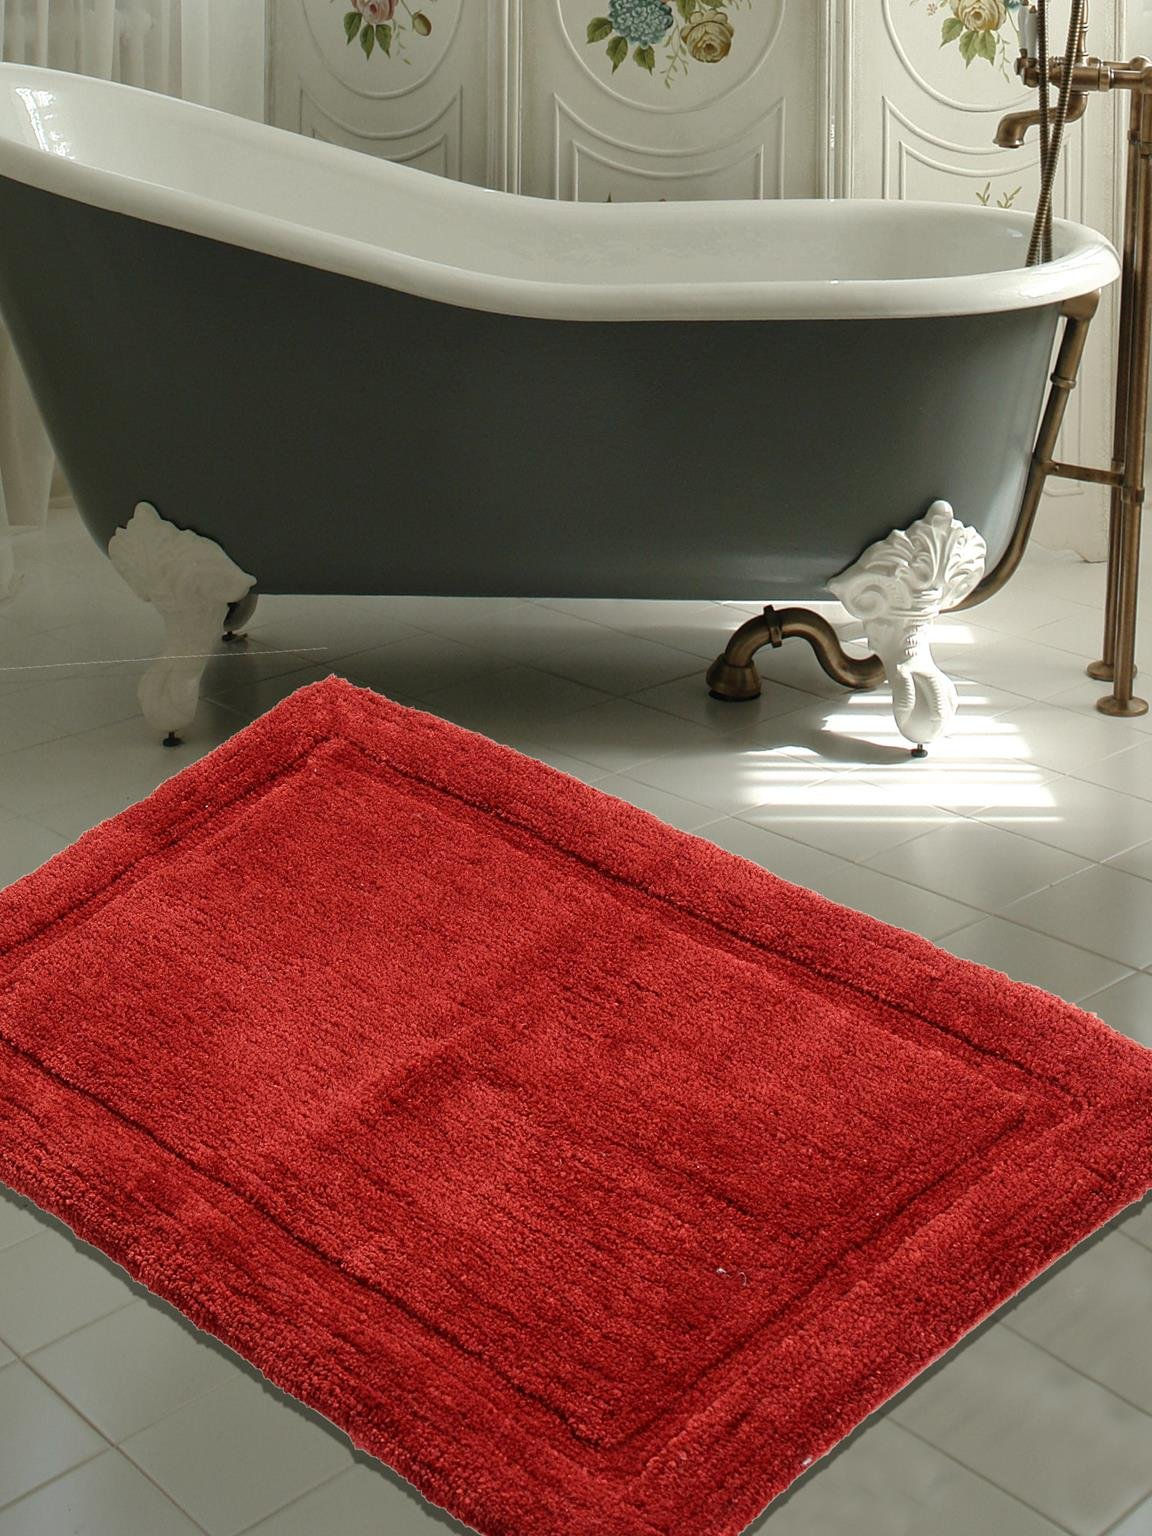 WARISI - Track Collection - Solids microfiber Bathroom, Bedroom Rug, 34 x 21 inches (Marsala)